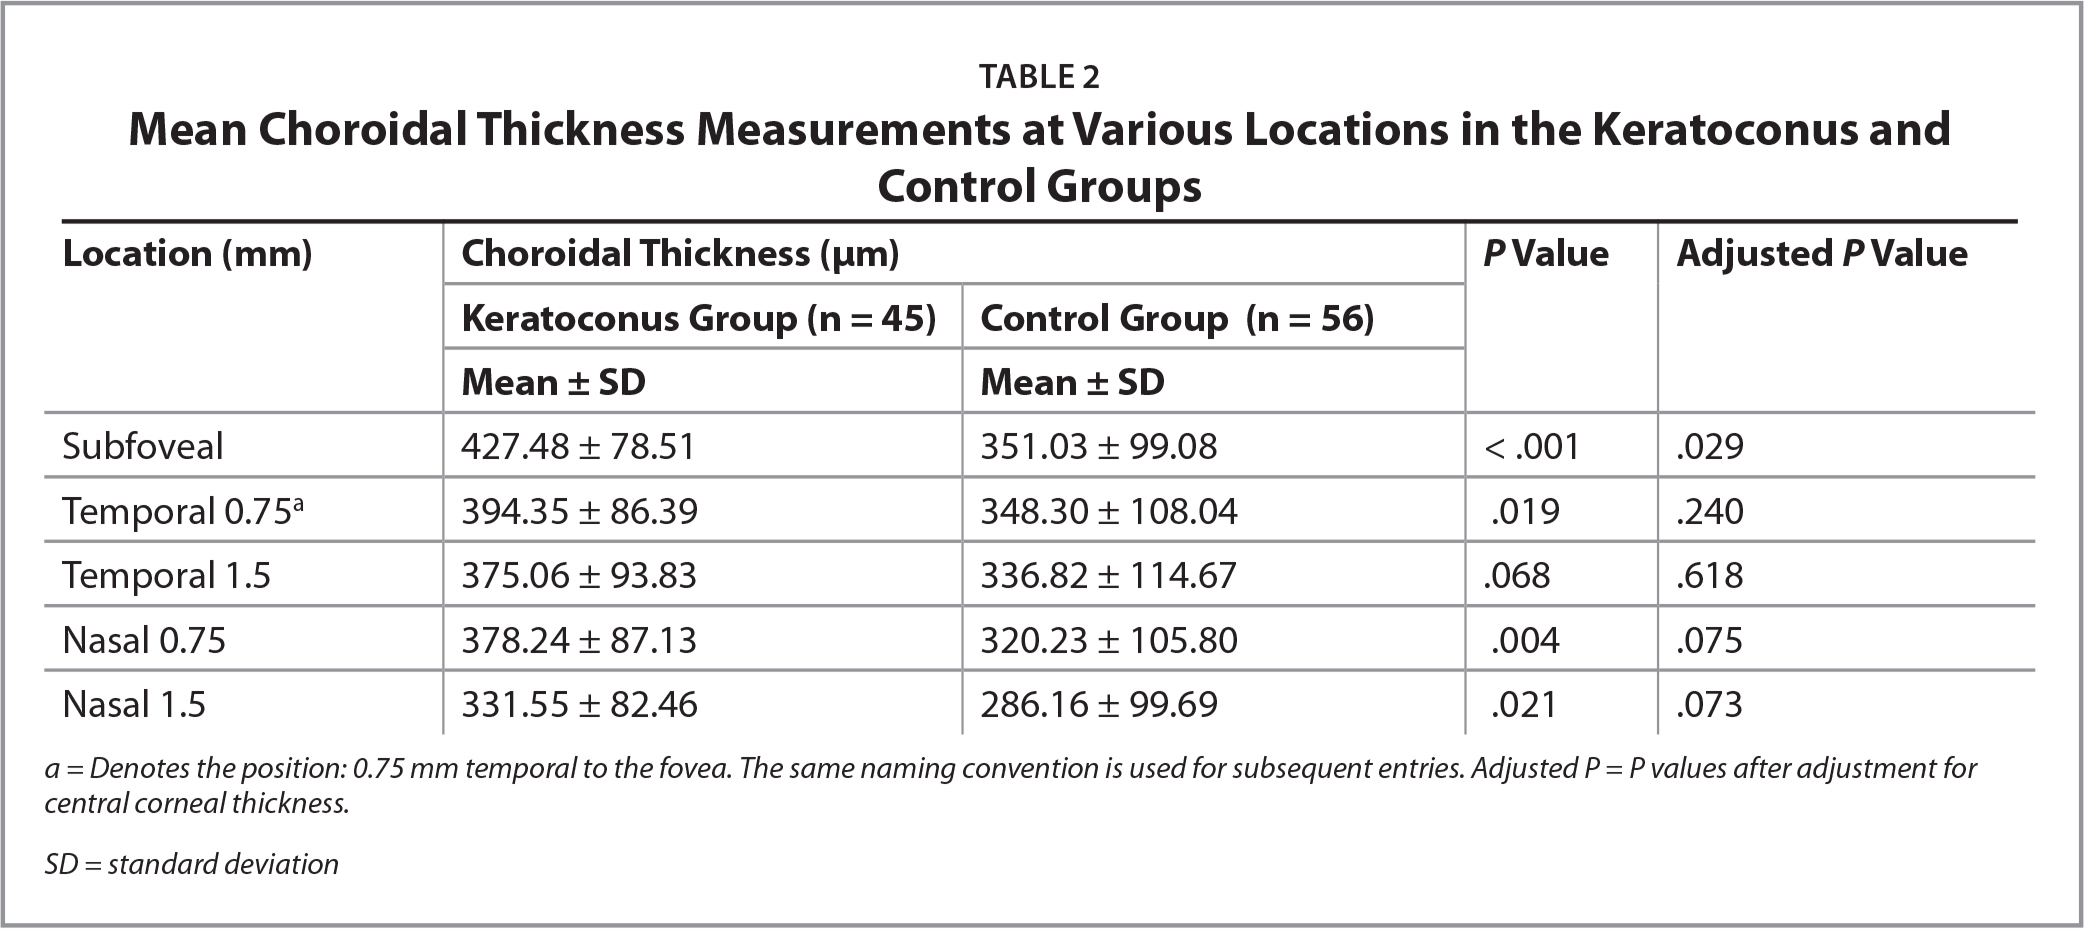 Mean Choroidal Thickness Measurements at Various Locations in the Keratoconus and Control Groups